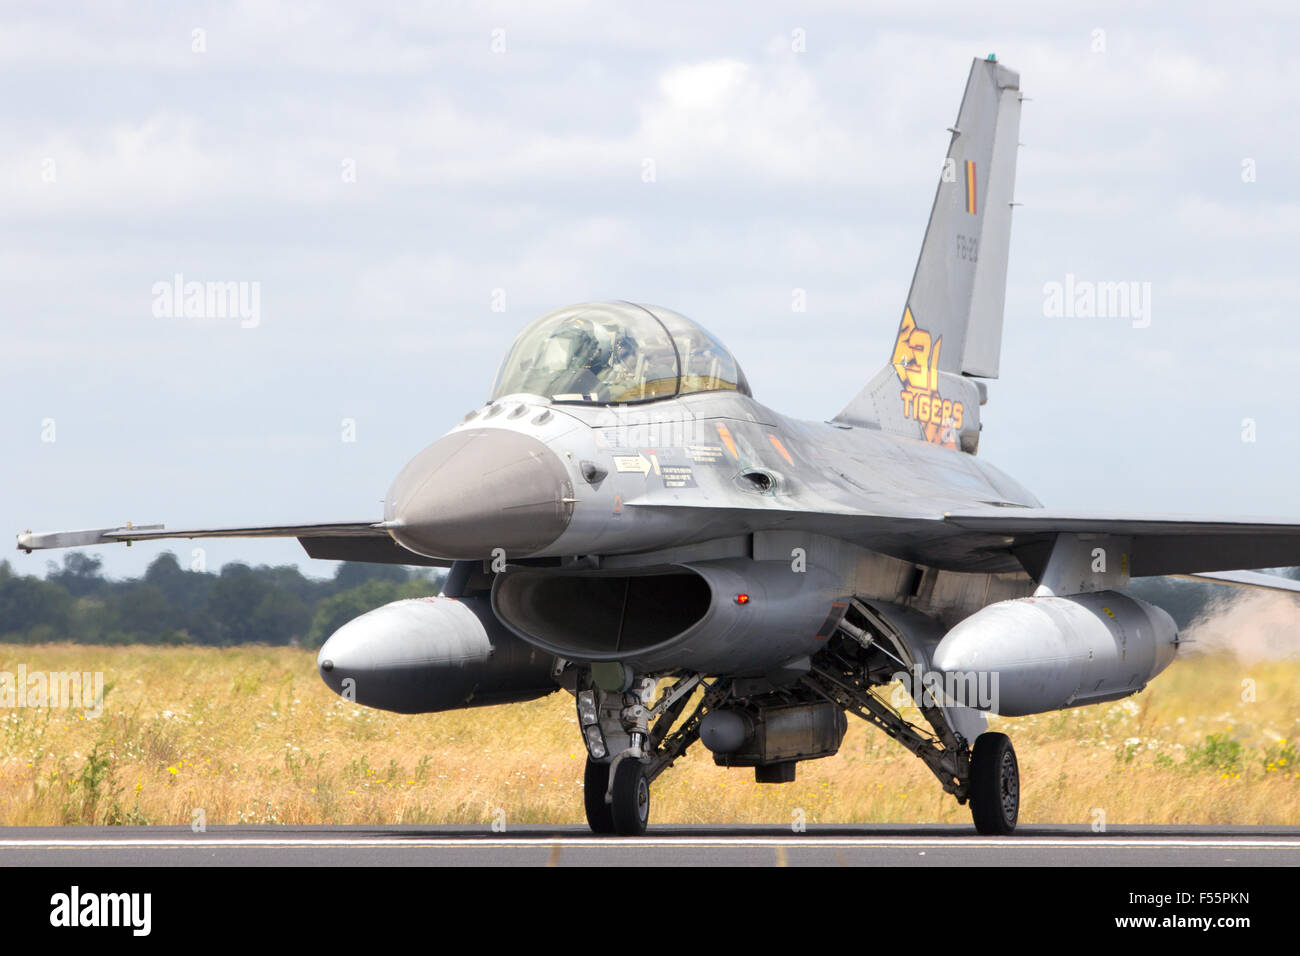 Belgian Air Force F-16 fighter jet during the NATO Tiger Meet at Schleswig-Jagel airbase - Stock Image